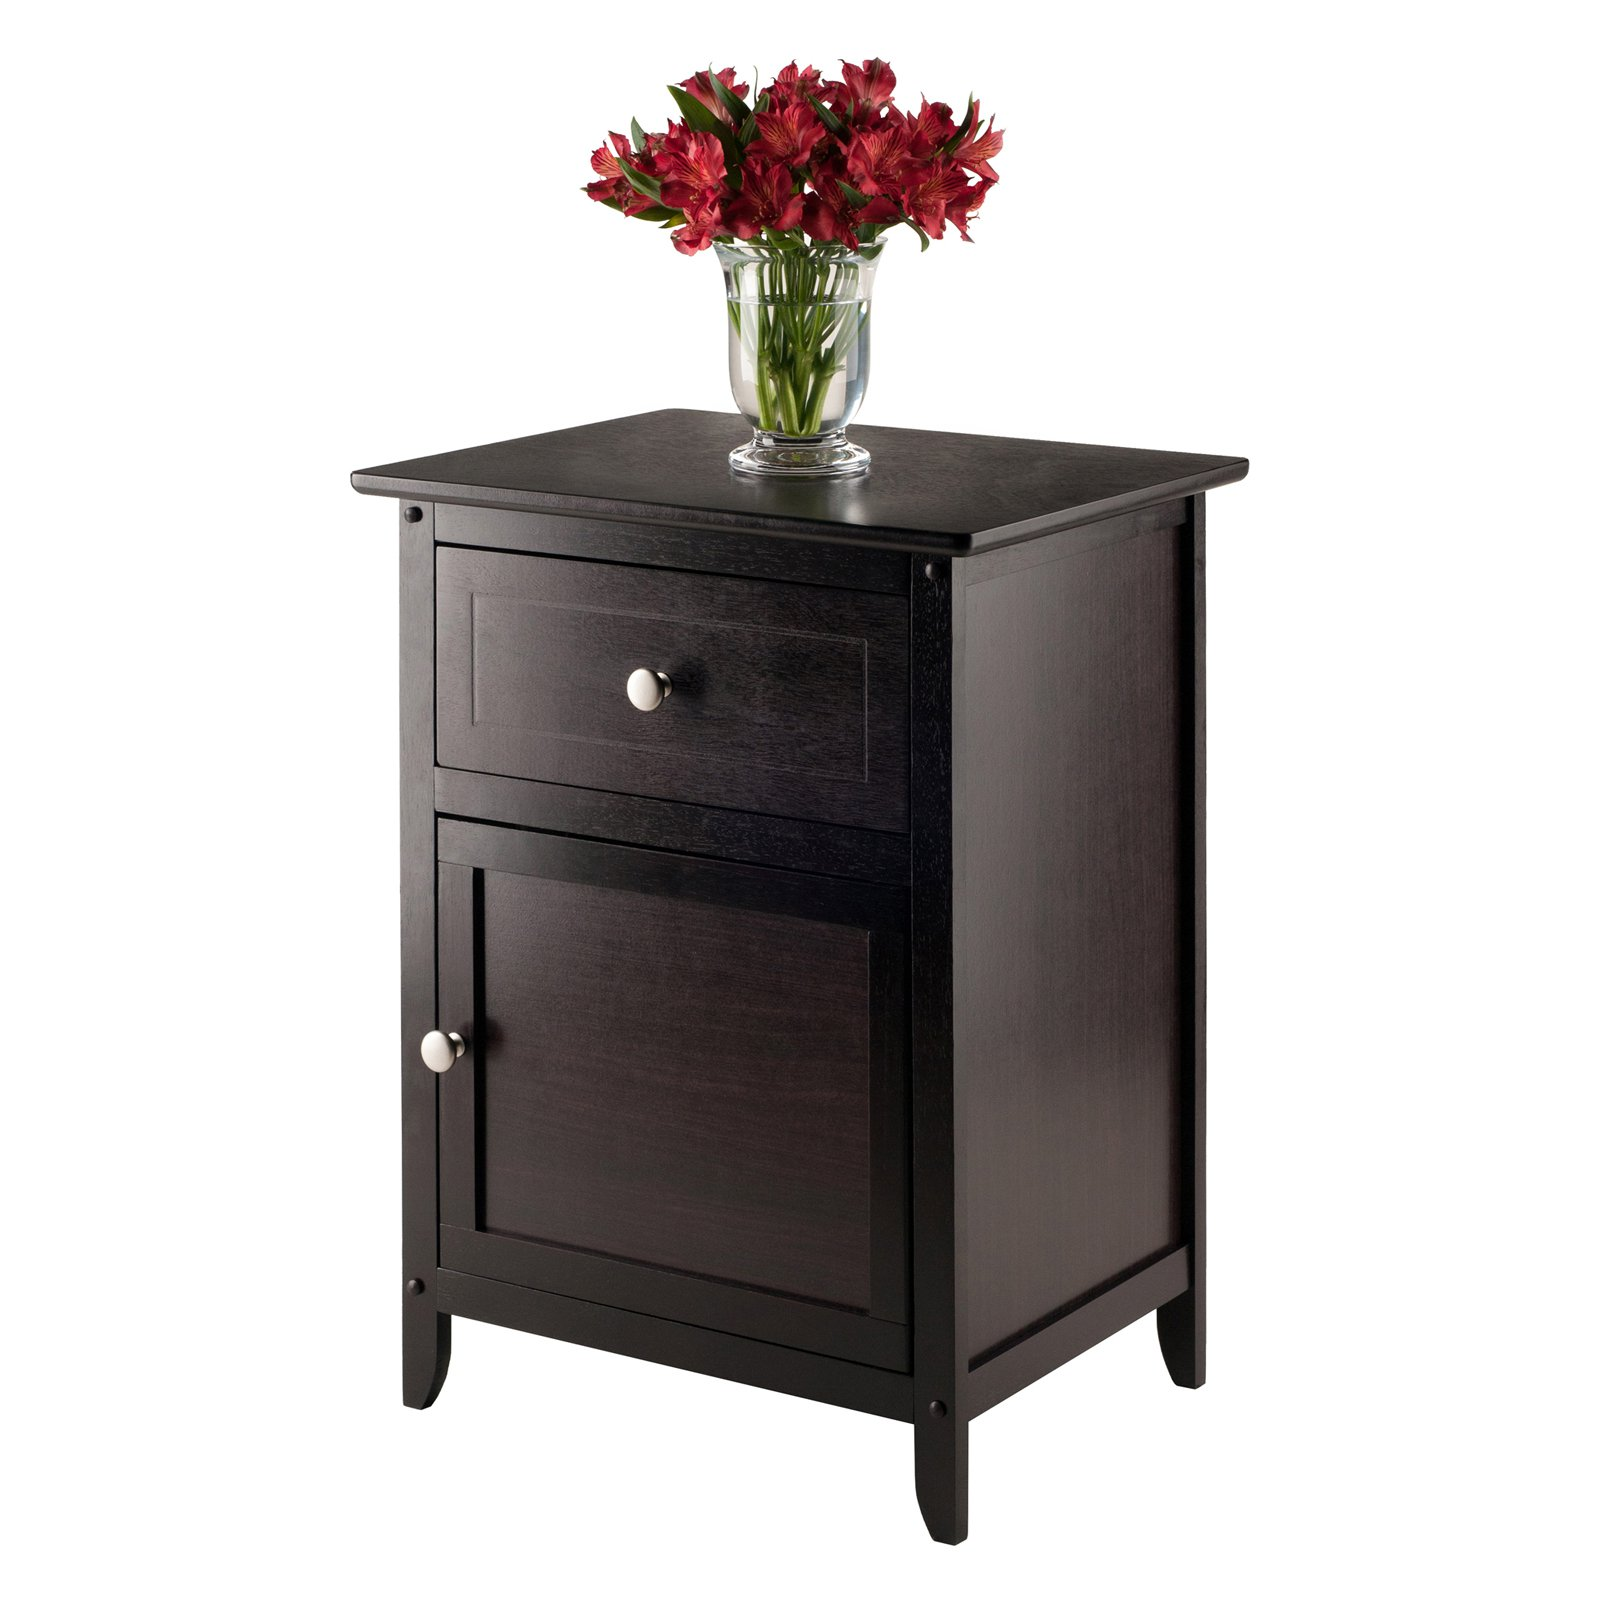 Incroyable Night Table With Cabinet And Drawer, Multiple Colors